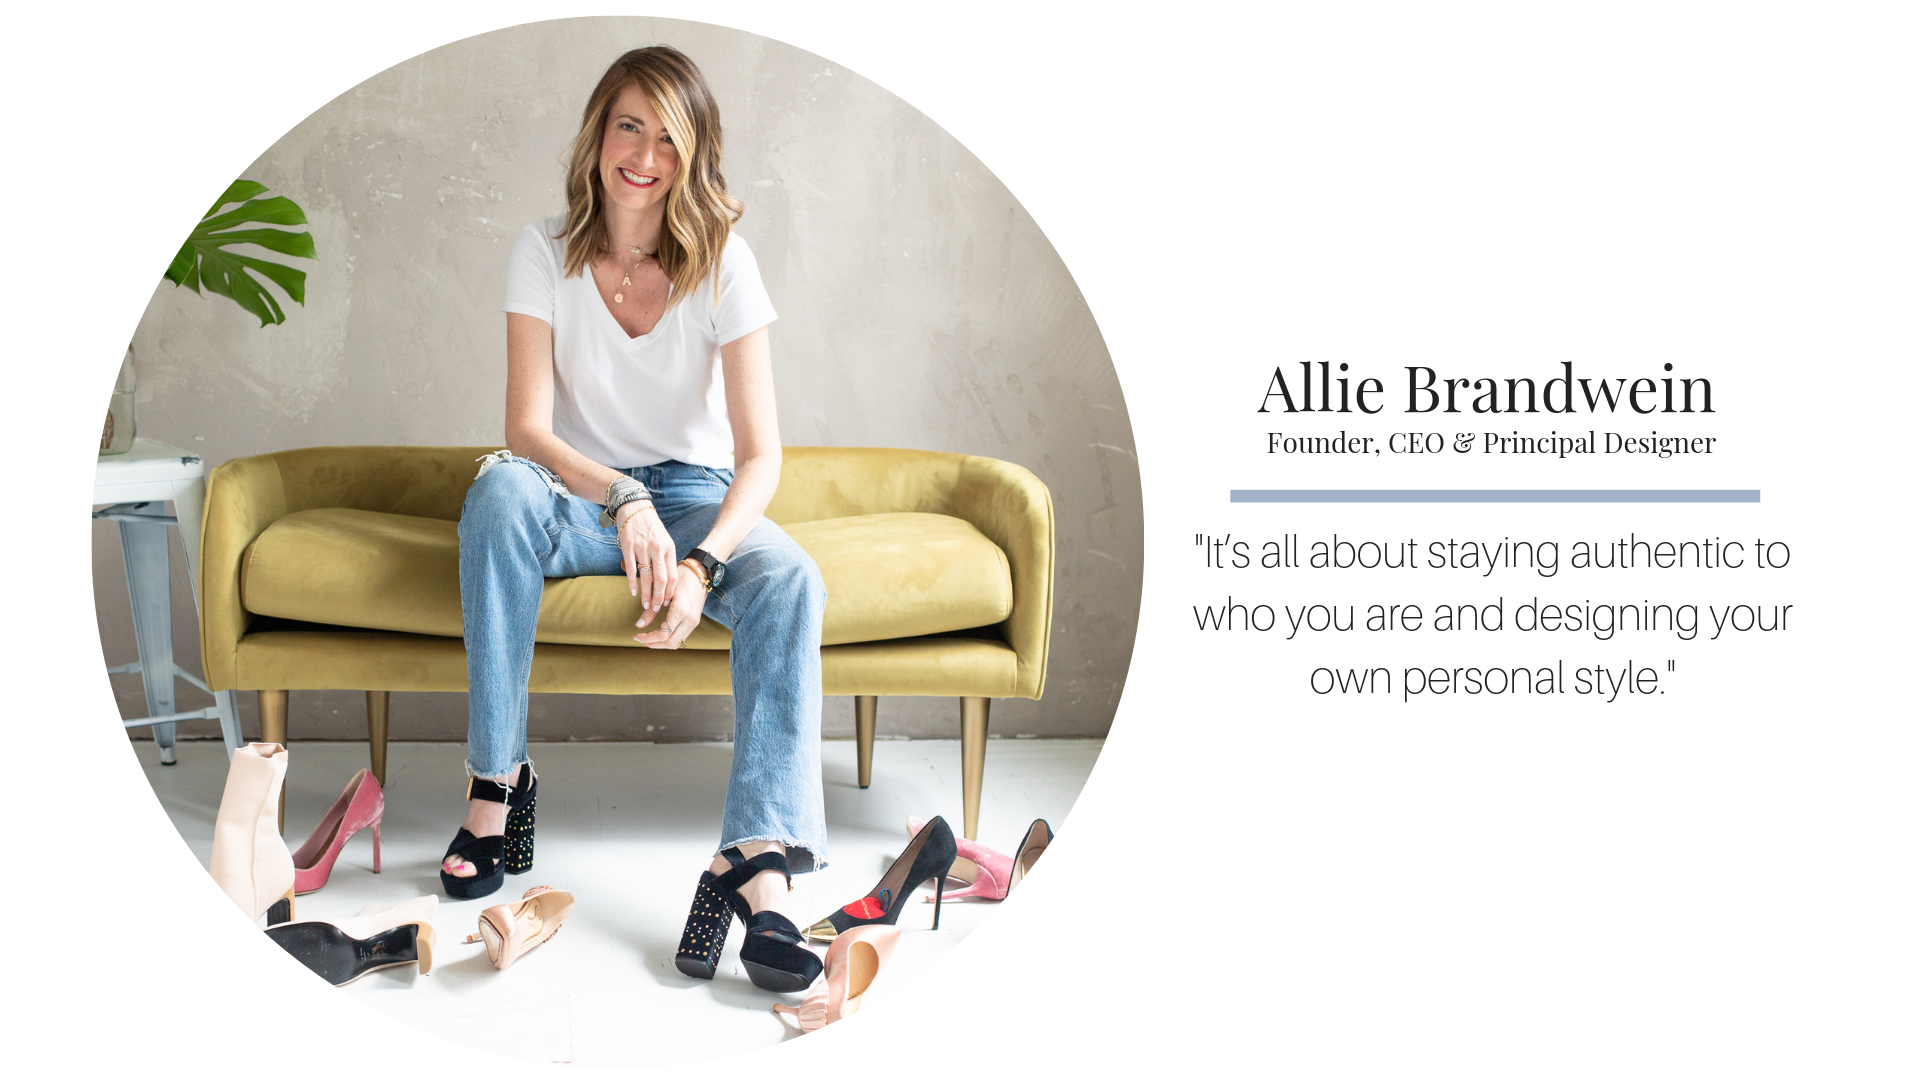 allie-brandwein-tbg-nyc-about-me-Lifestyle-Design.png